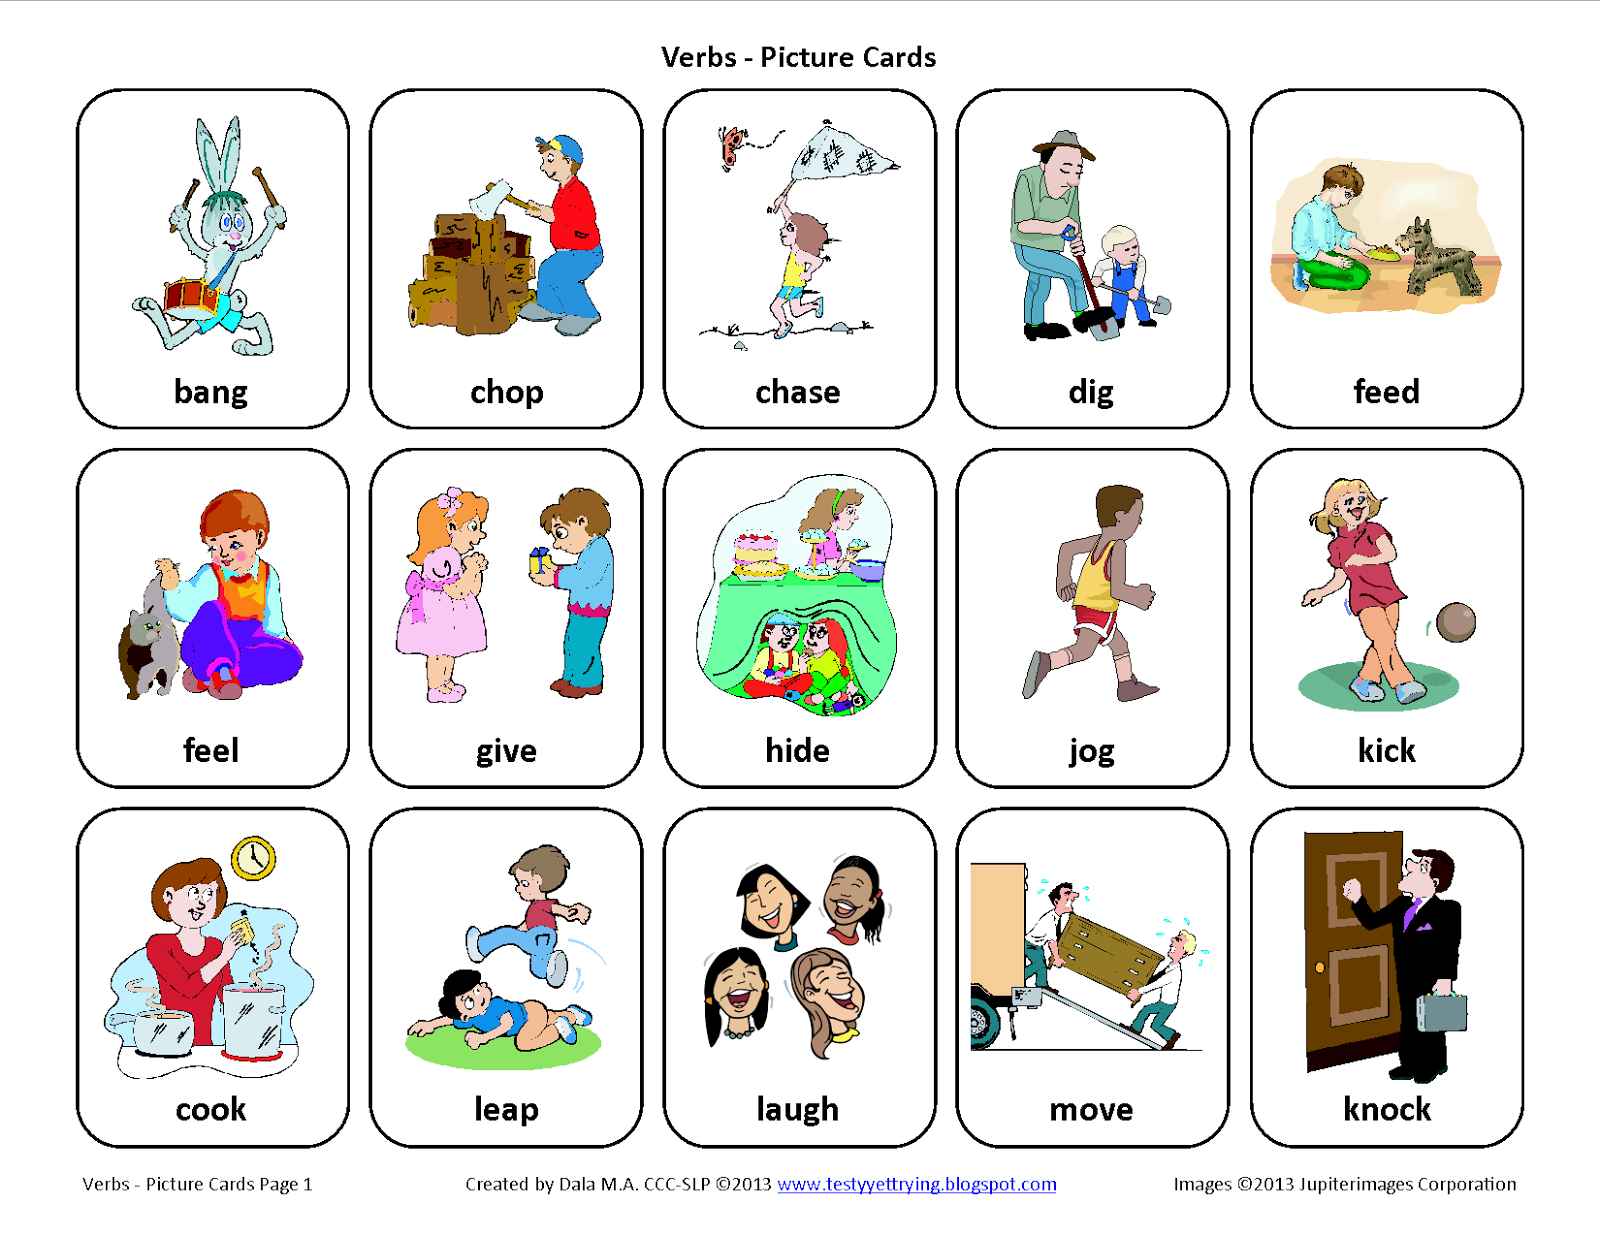 testy yet trying verbs speech therapy picture cards verbs card set